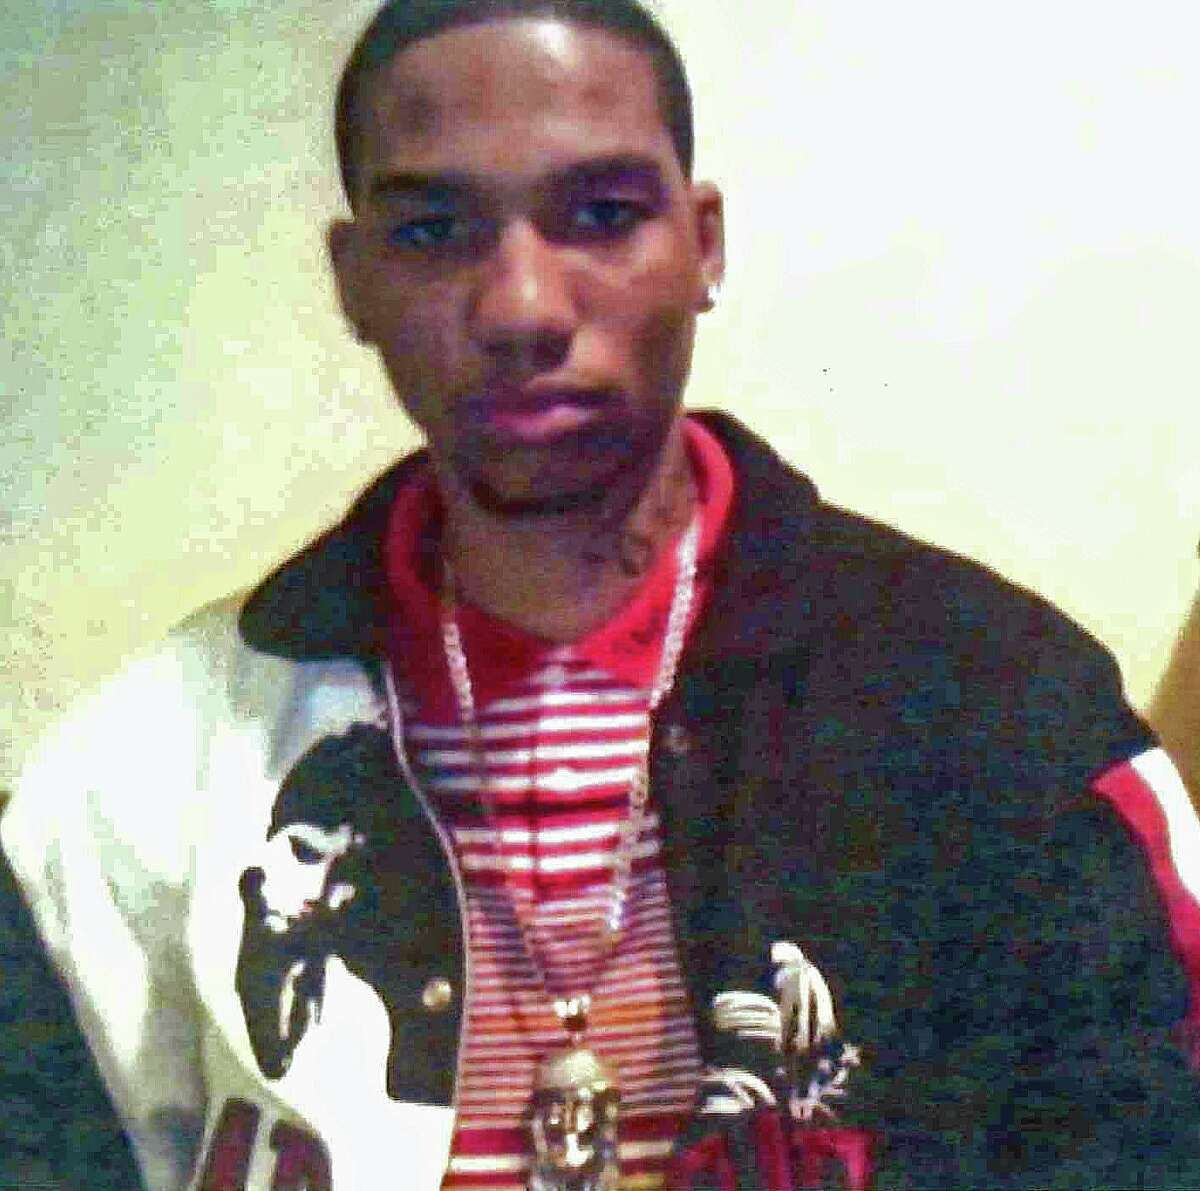 Tremaine Newton, 20, of Trumbull Avenue in Bridgeport, Conn., was found fatally shot in a vehicle off the side of the highway in West Haven on June 13, 2009. This year marks 12 years since his death. His homicide remains unsolved.